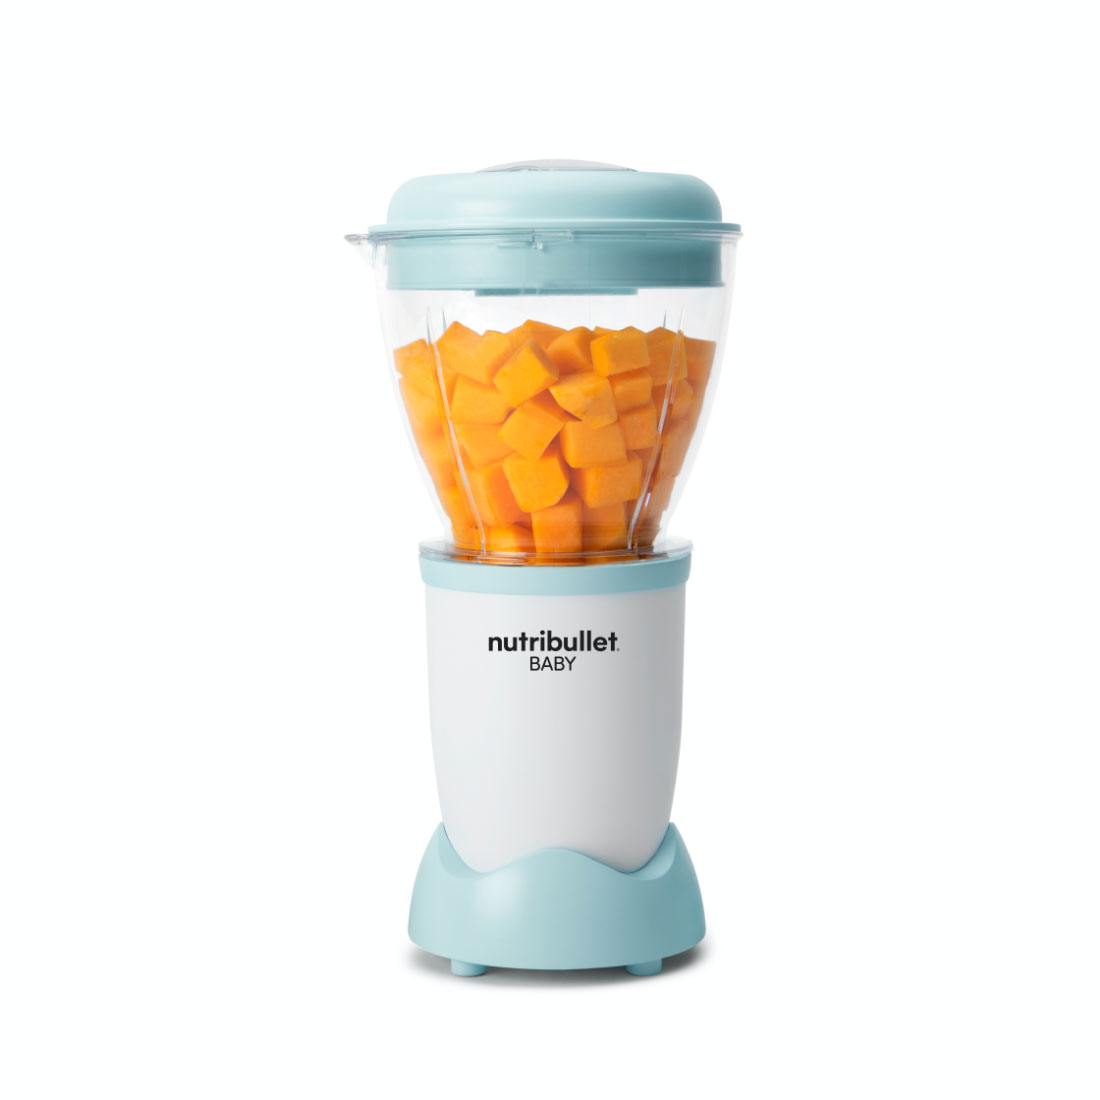 An image of NutriBullet Baby